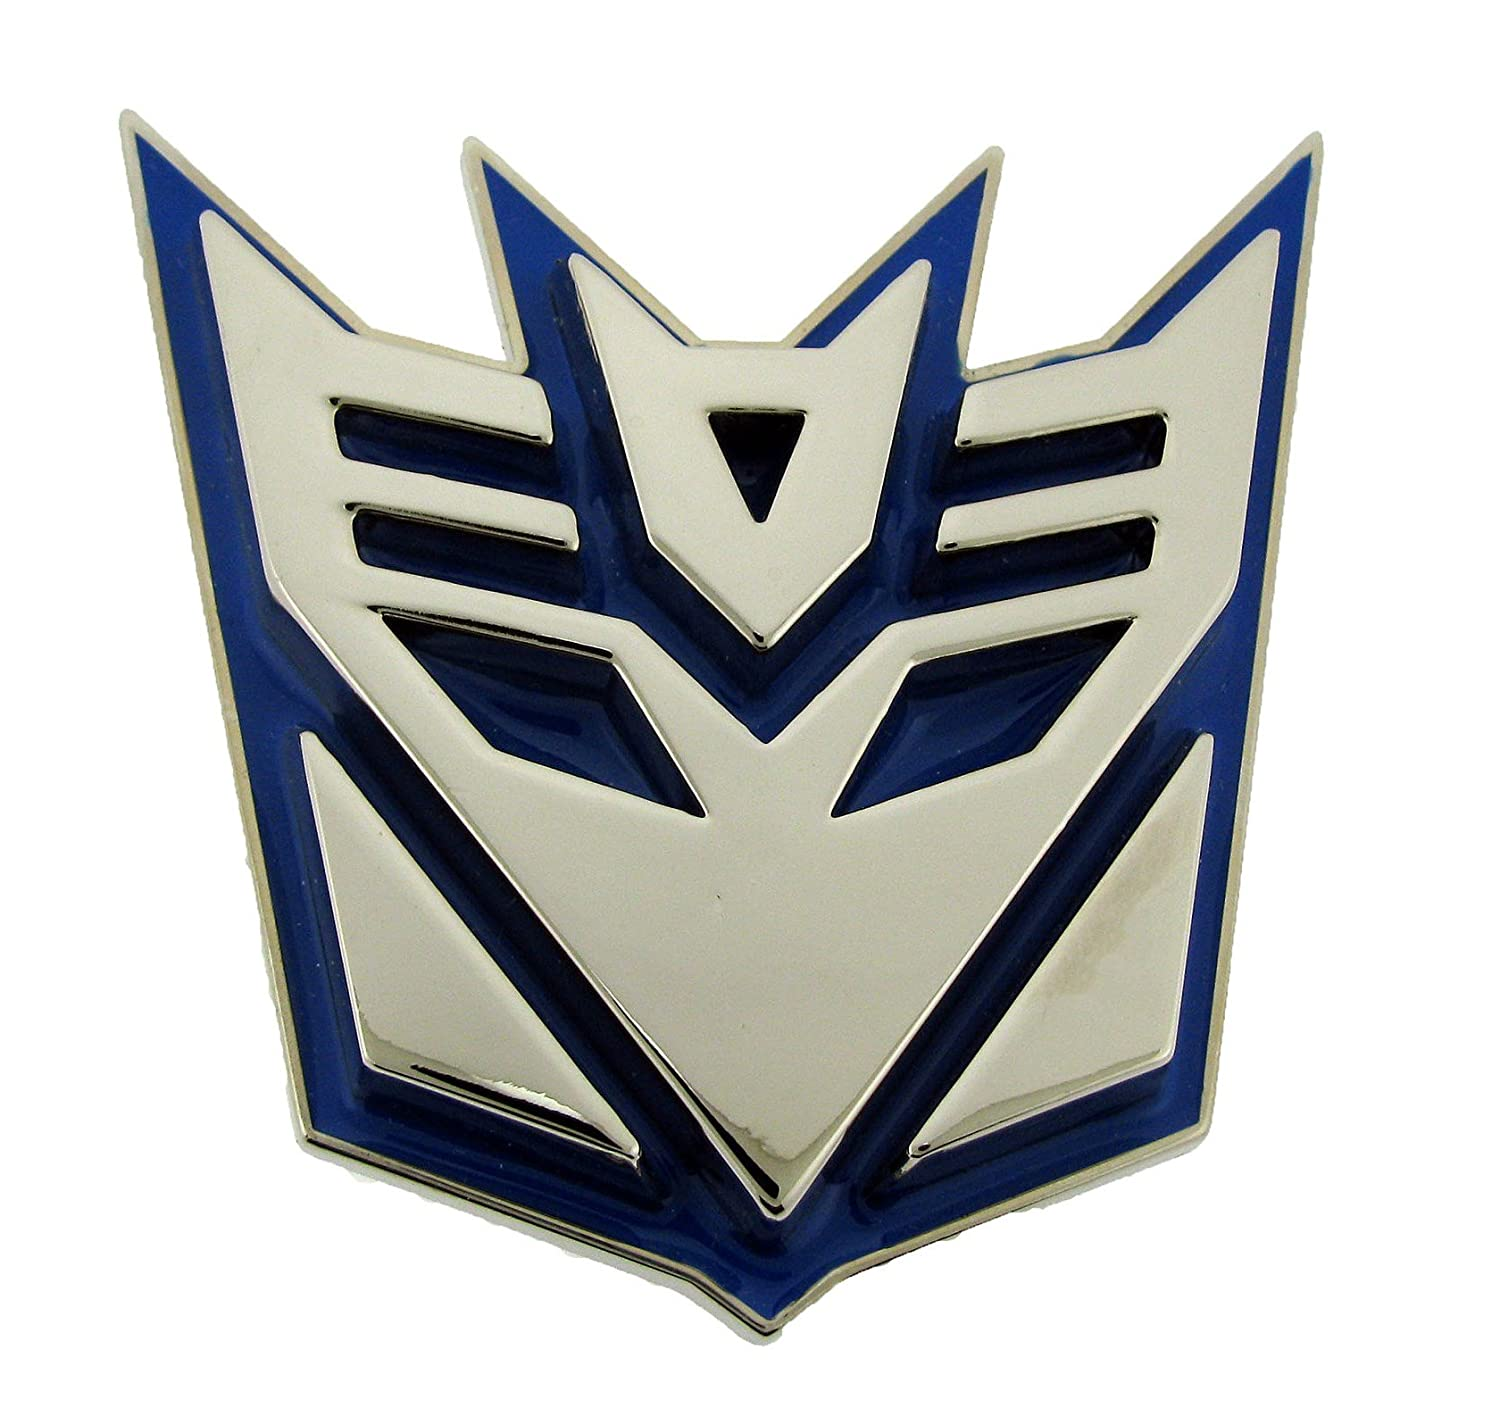 Transformers Decepticon Megatron Blue Belt Buckle G1 Grimlock Metal Hasbro Movie